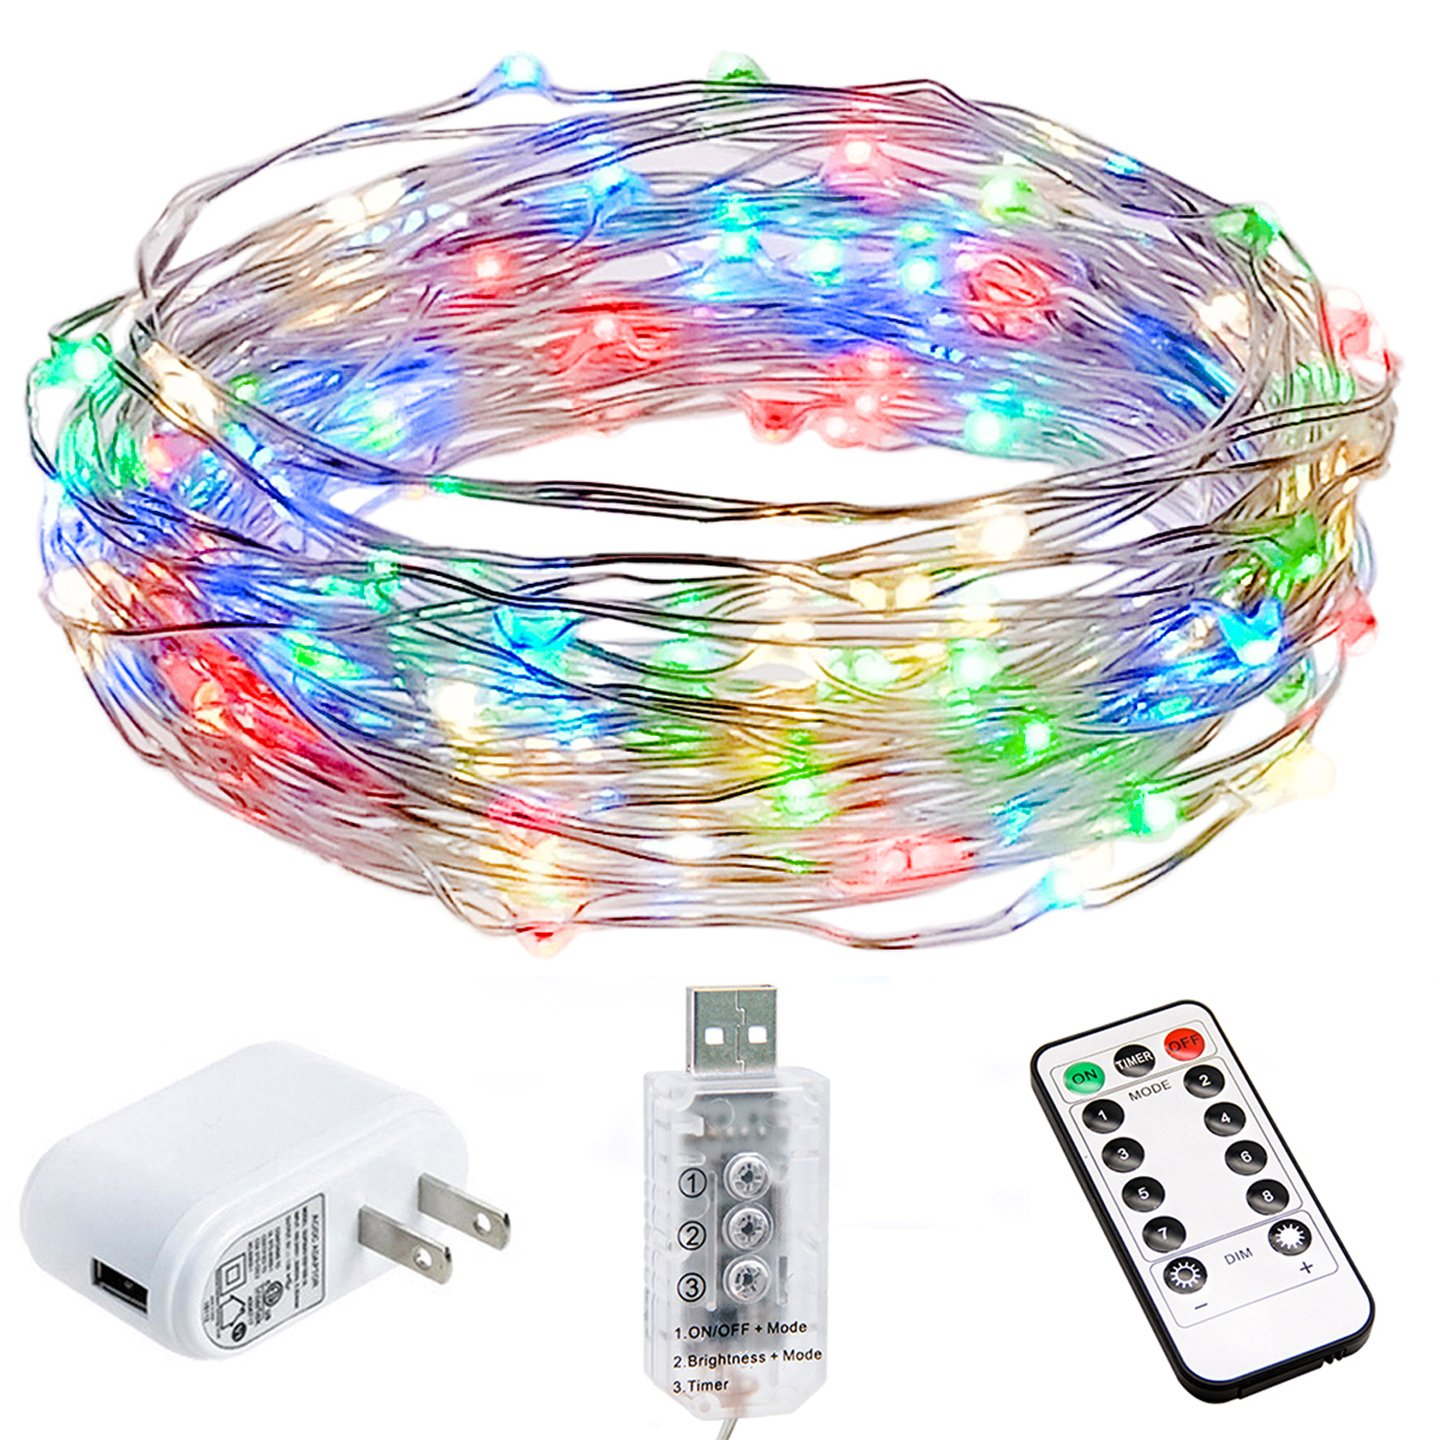 HSicily LED USB String Lights 8 Modes 33Ft 100 LEDs Starry Fairy Lights Plug in Remote Control with Timer for Wedding Christmas Party Bedroom Indoor Outdoor Decorative (Colorful)